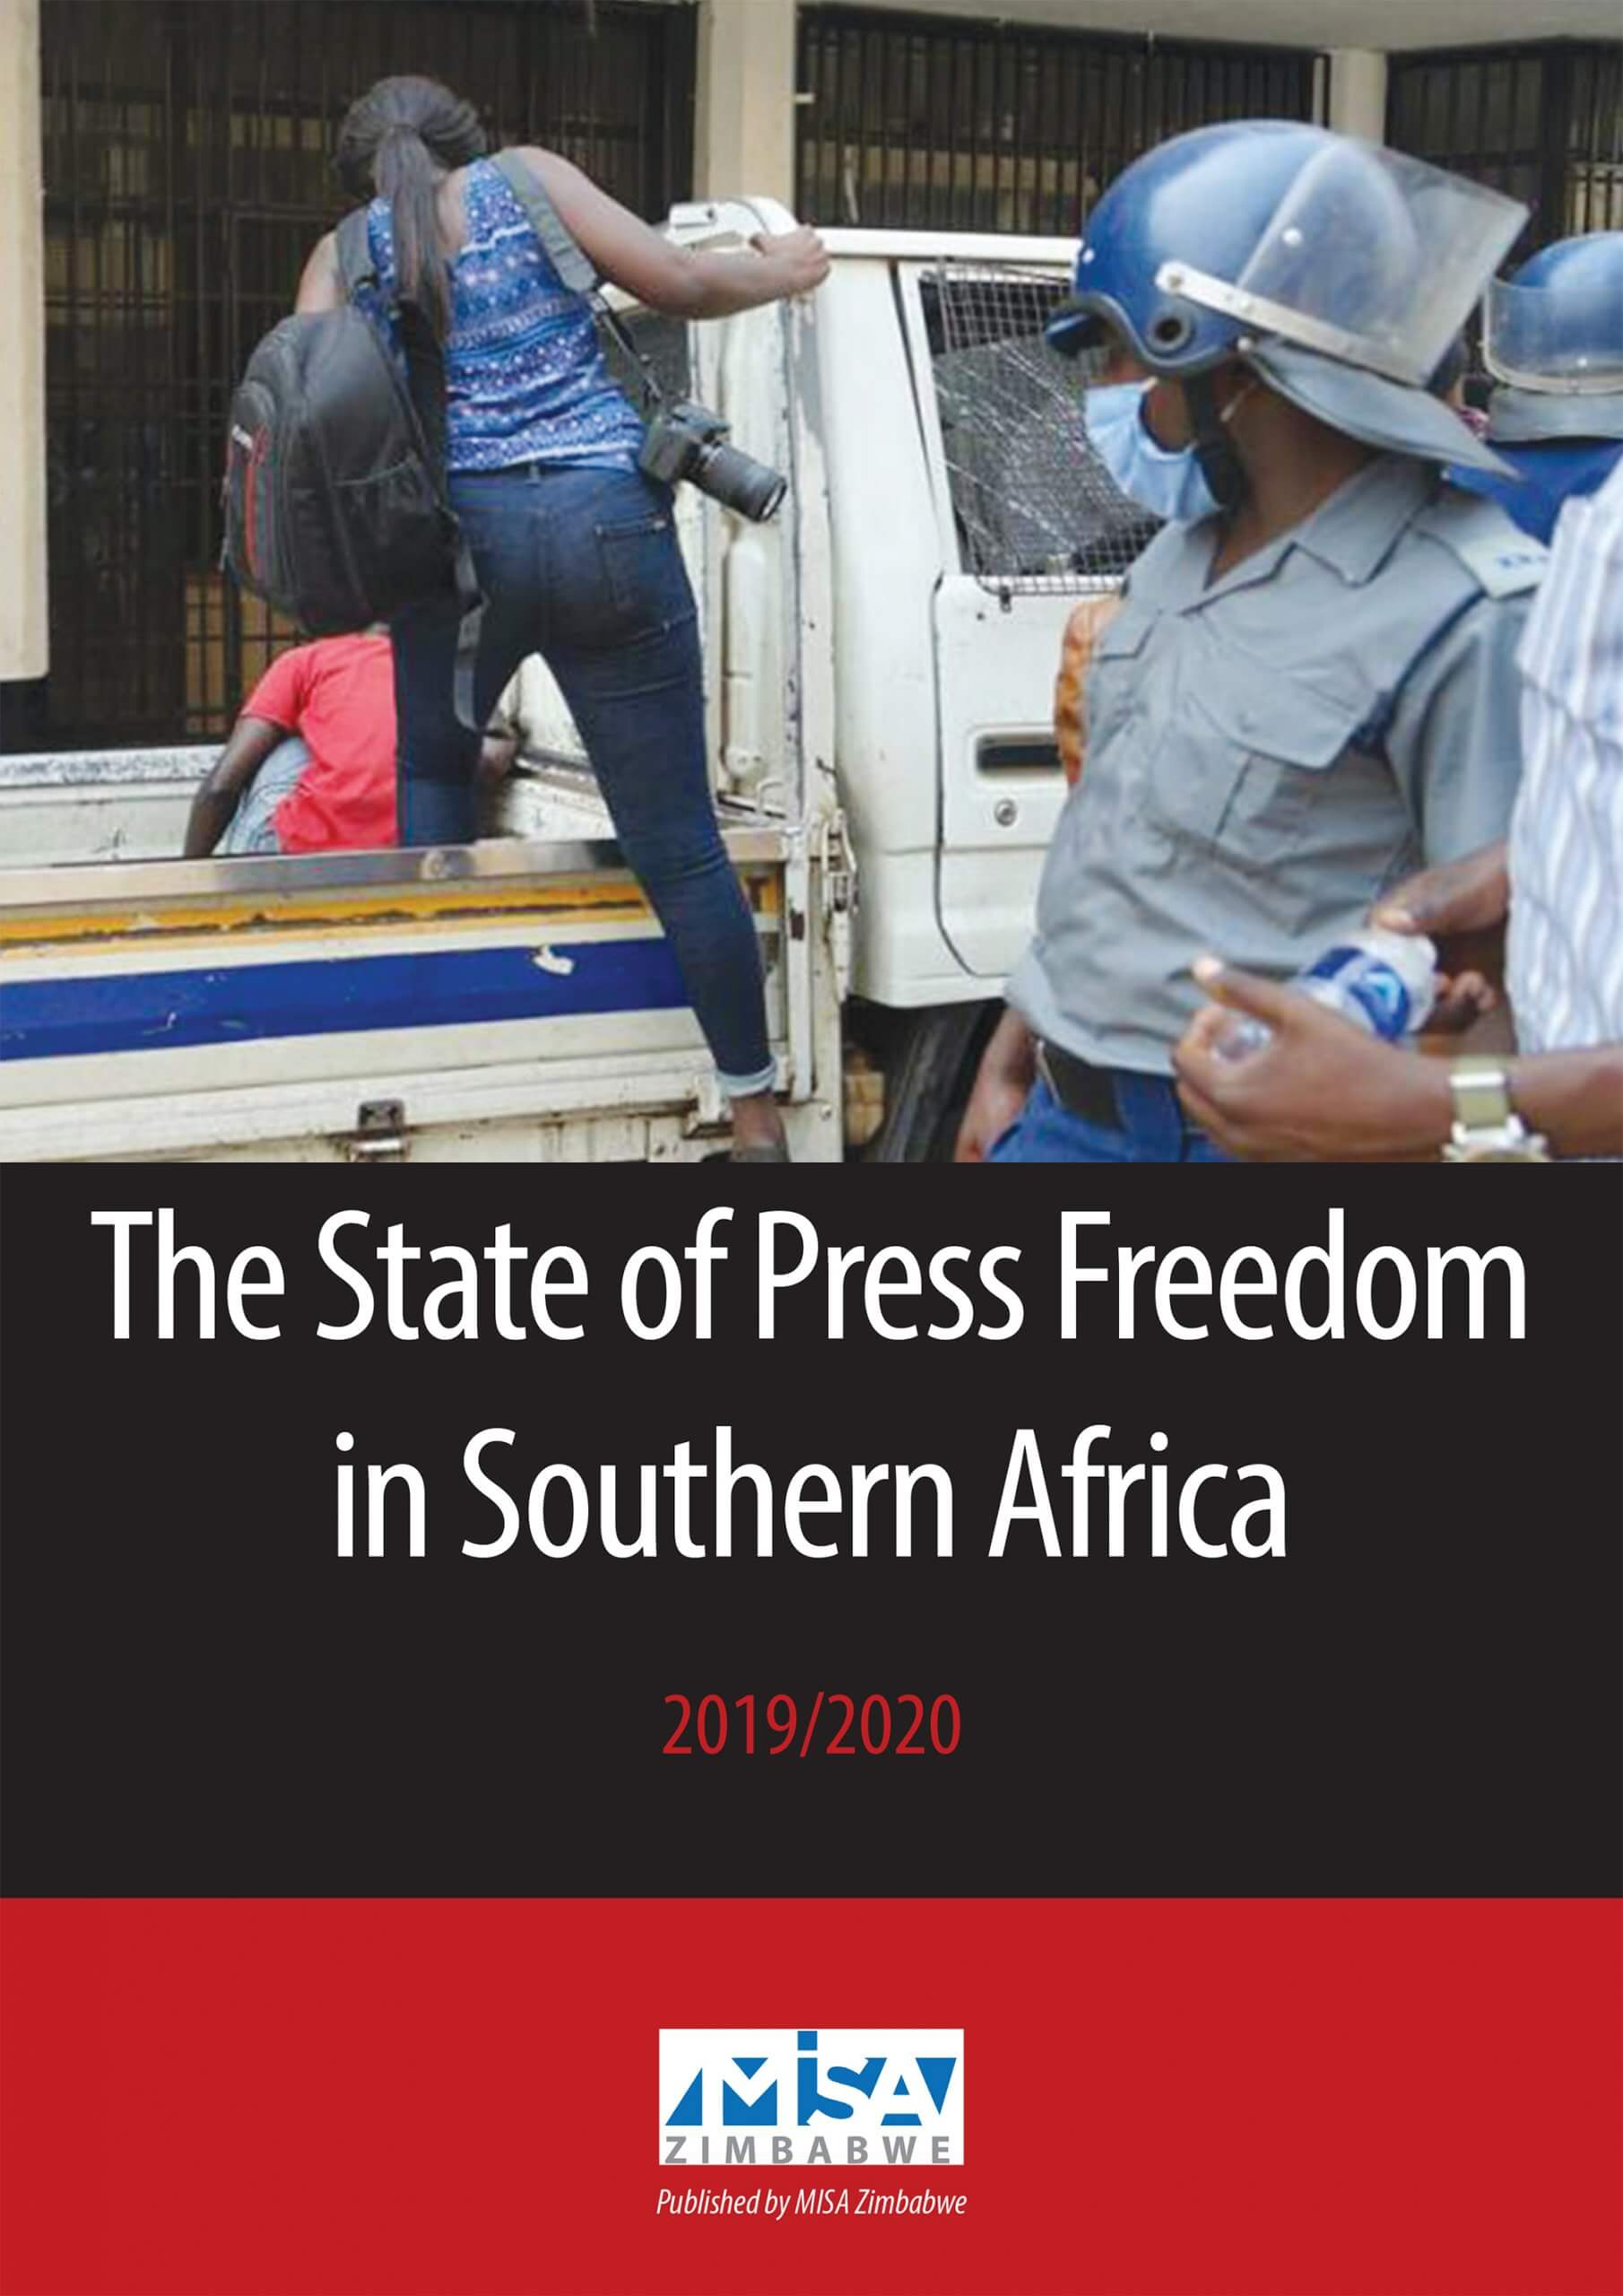 The state of press freedom in Southern Africa 2019/2020